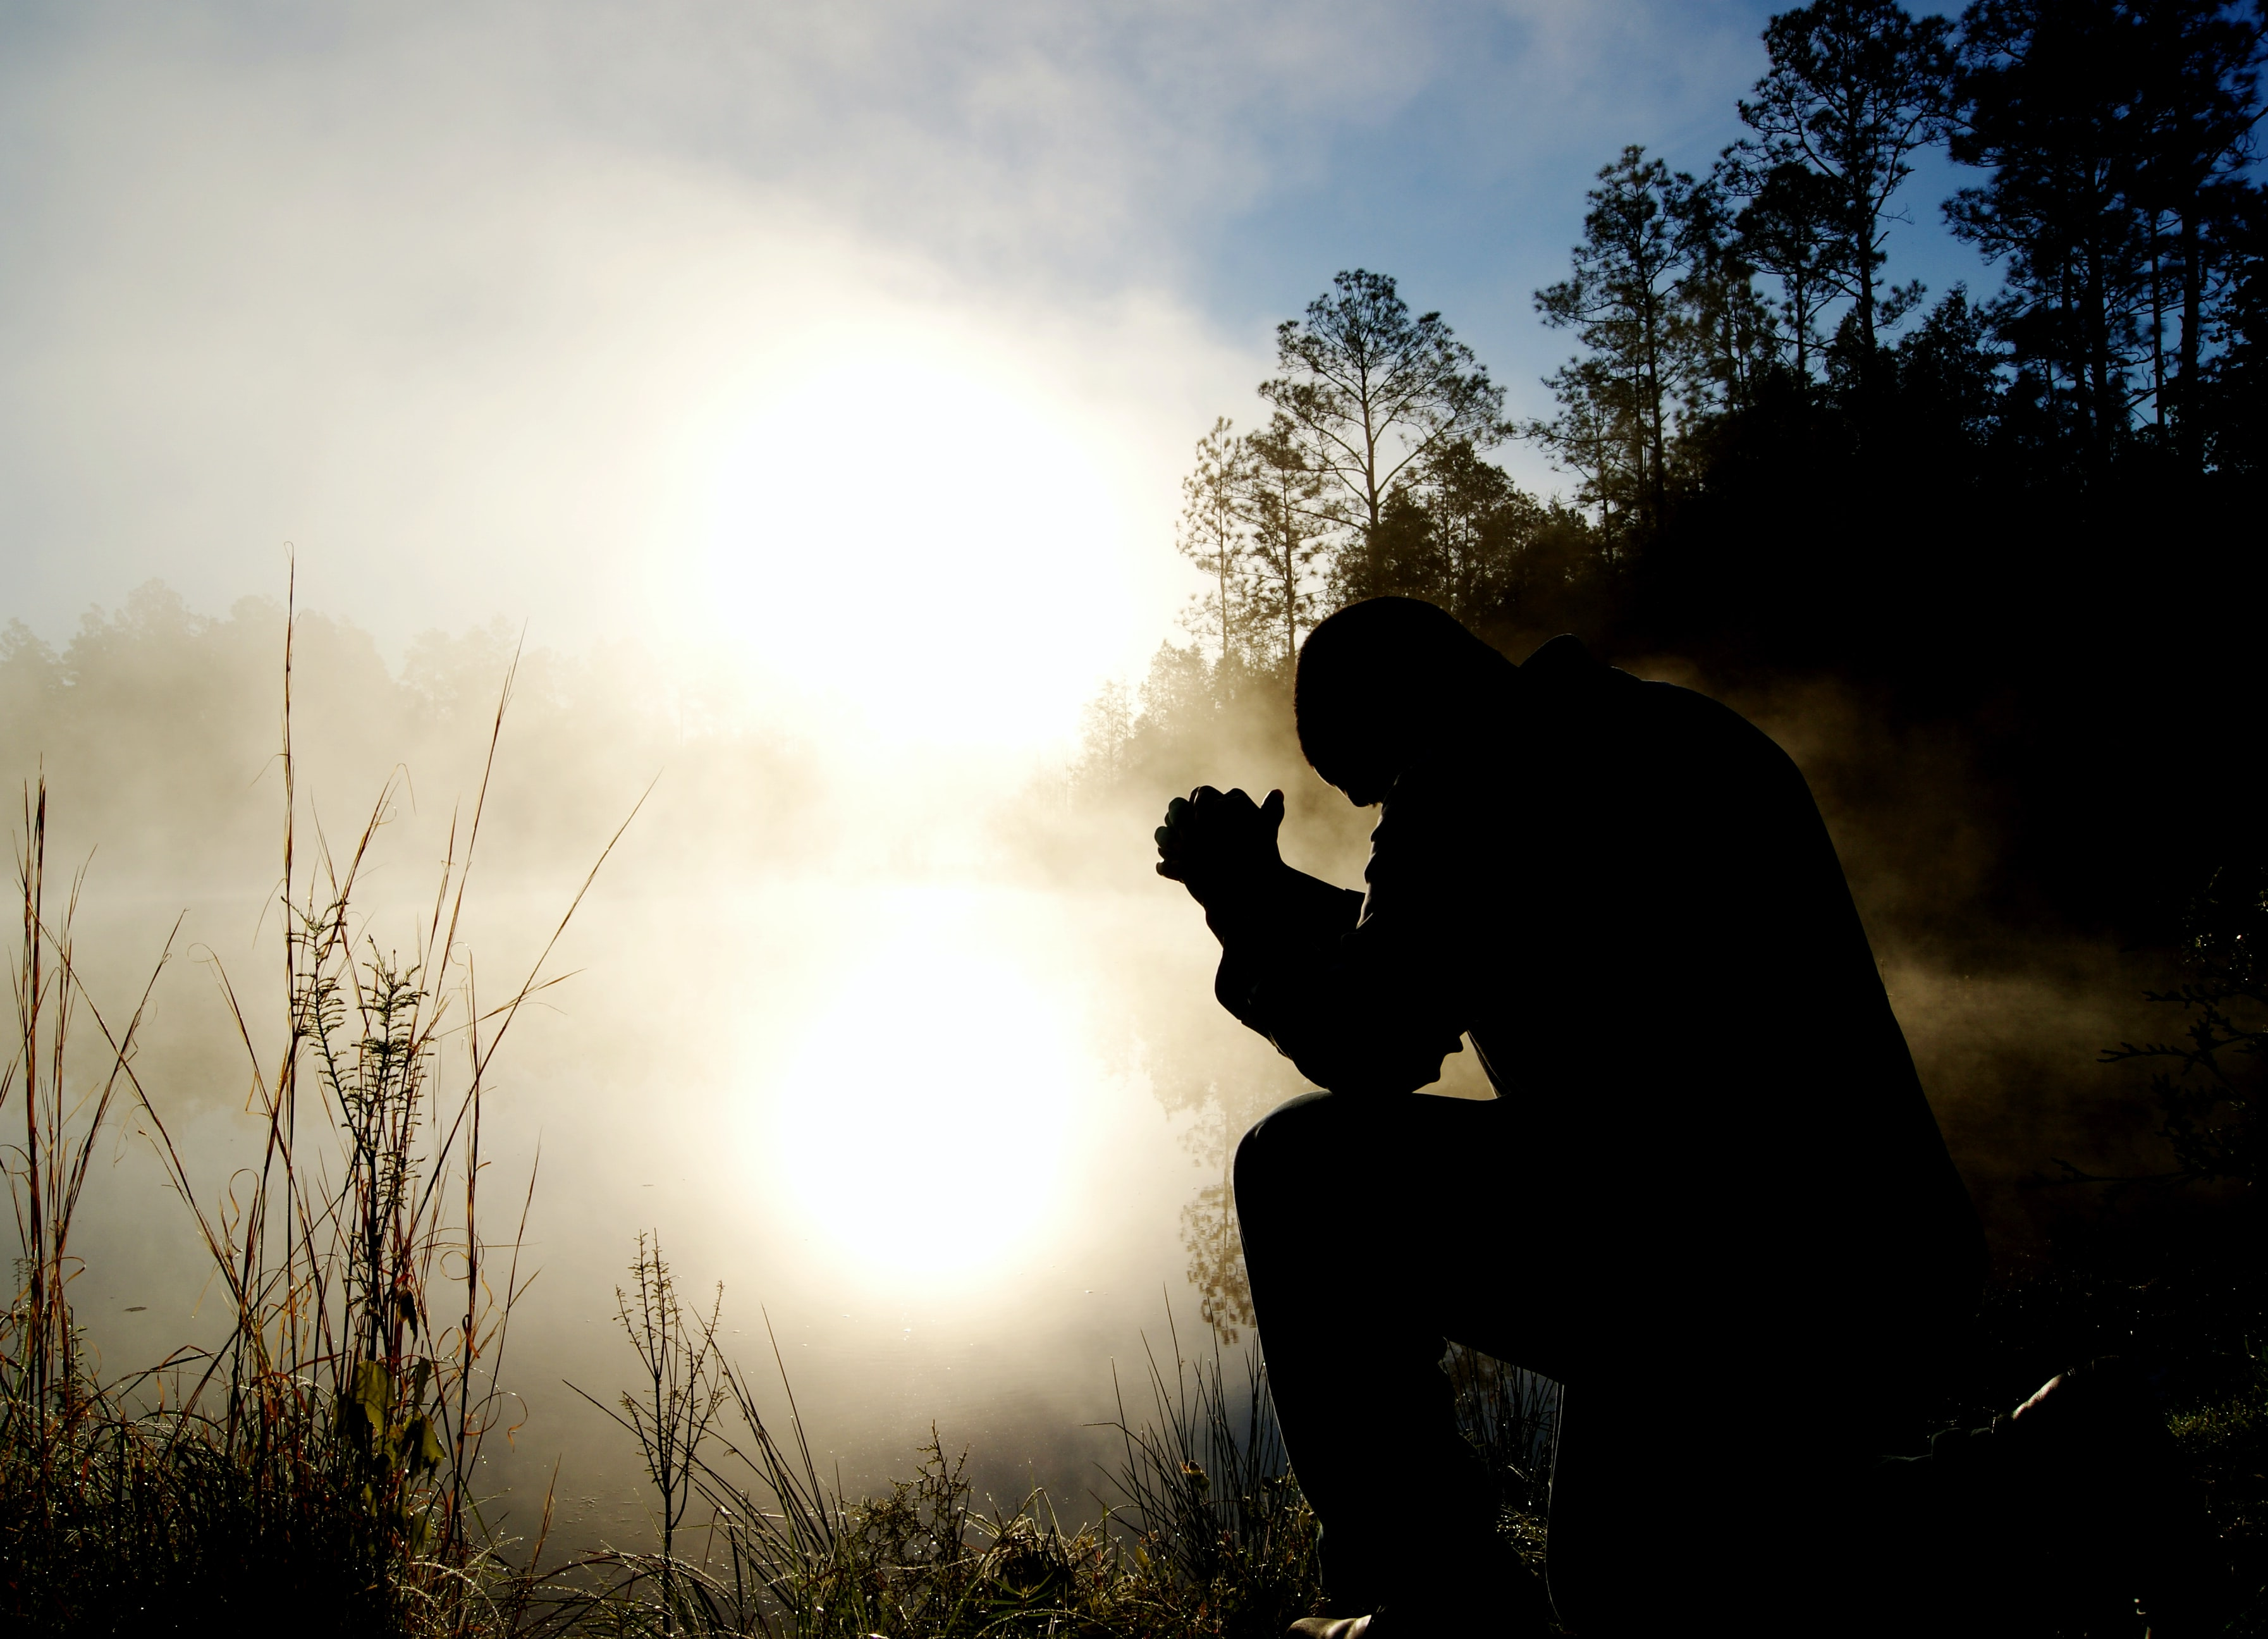 A silhouette of a man sitting outside with his hands together in prayer.